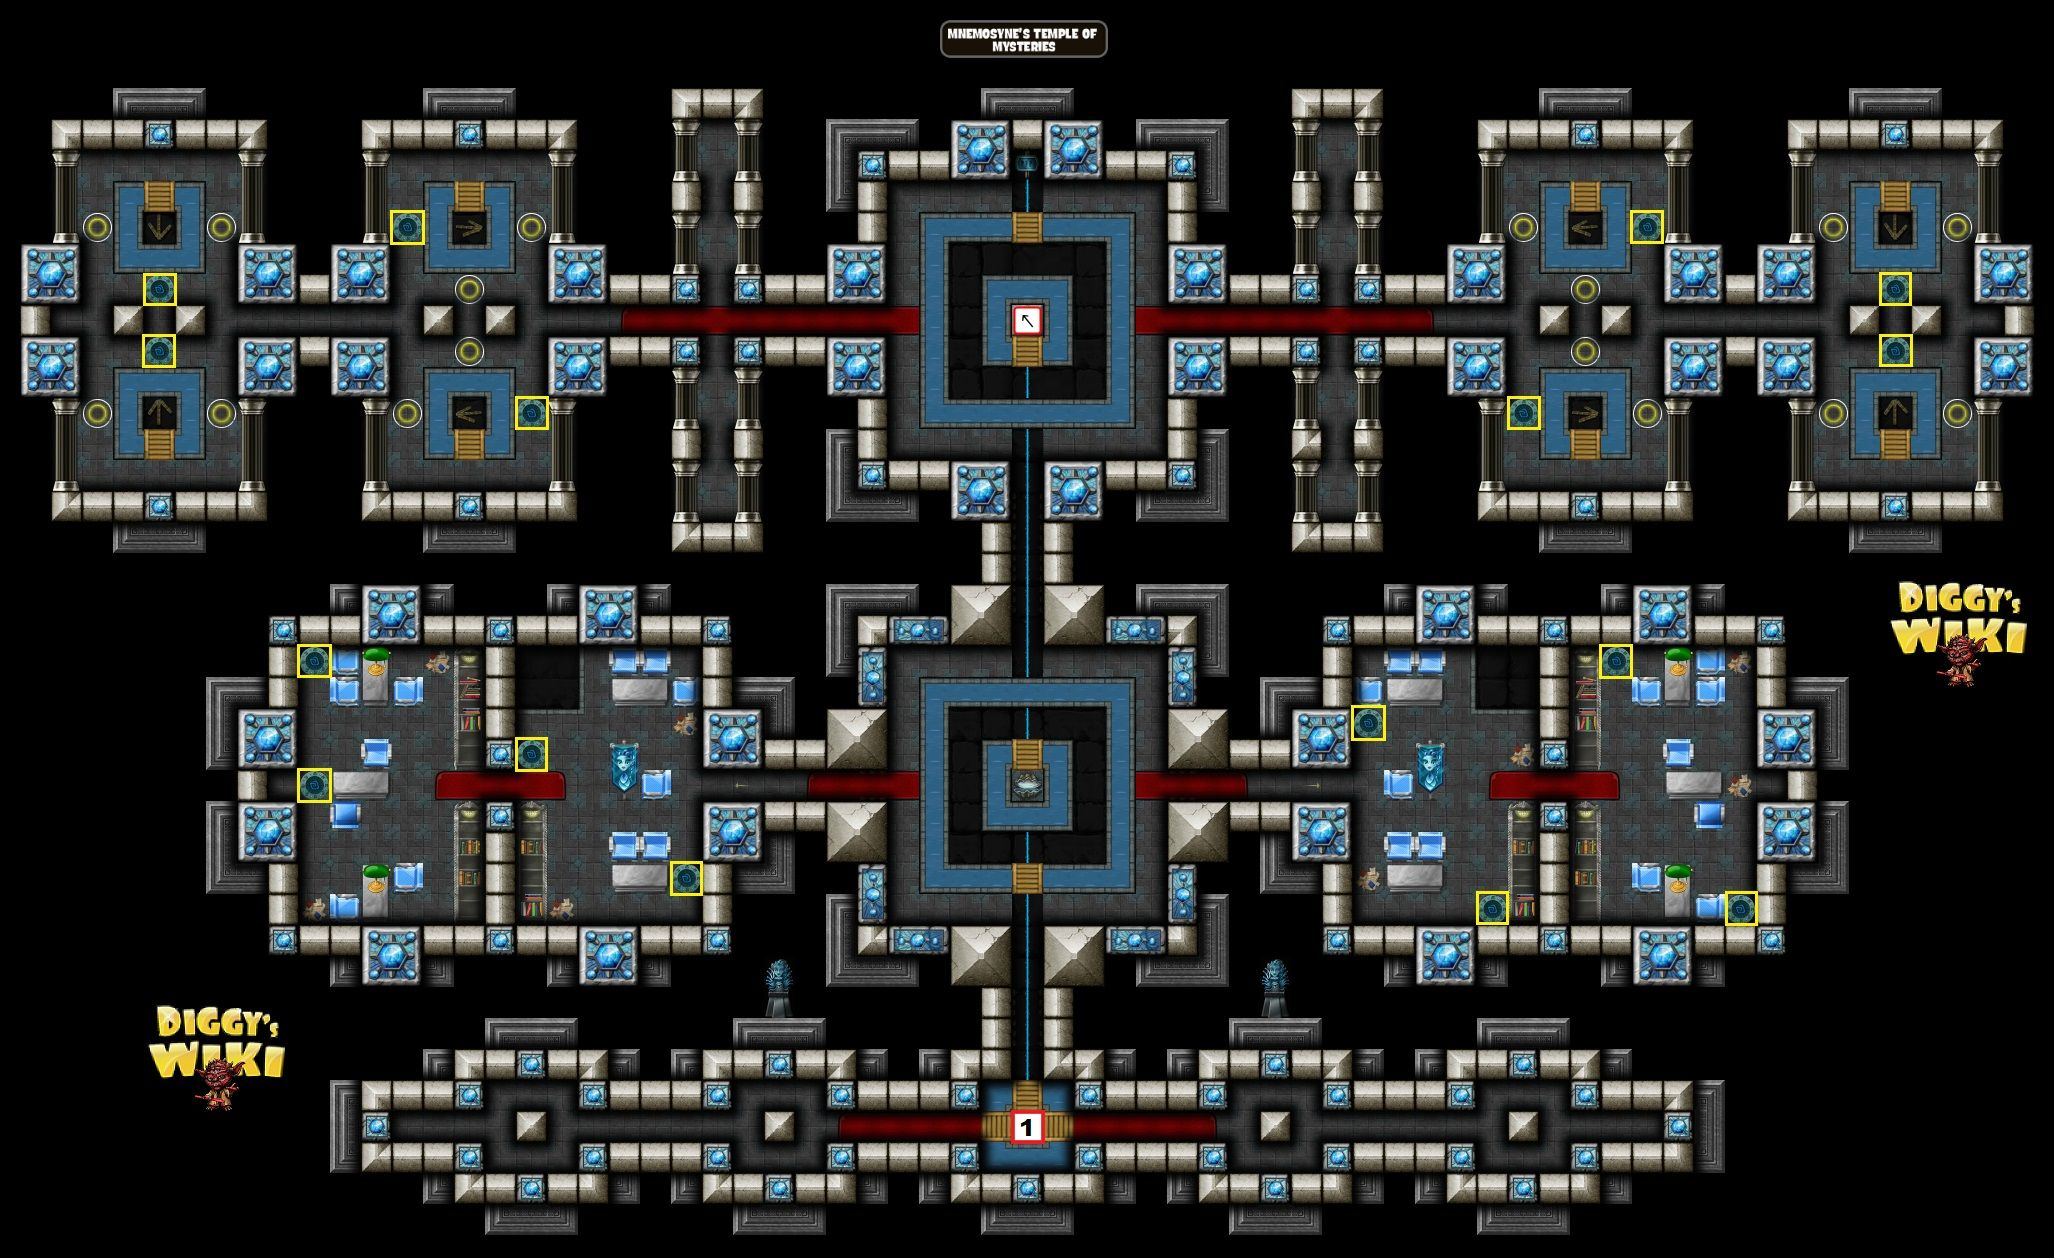 22-1 MNEMOSYNE_S TEMPLE OF MYSTERIES